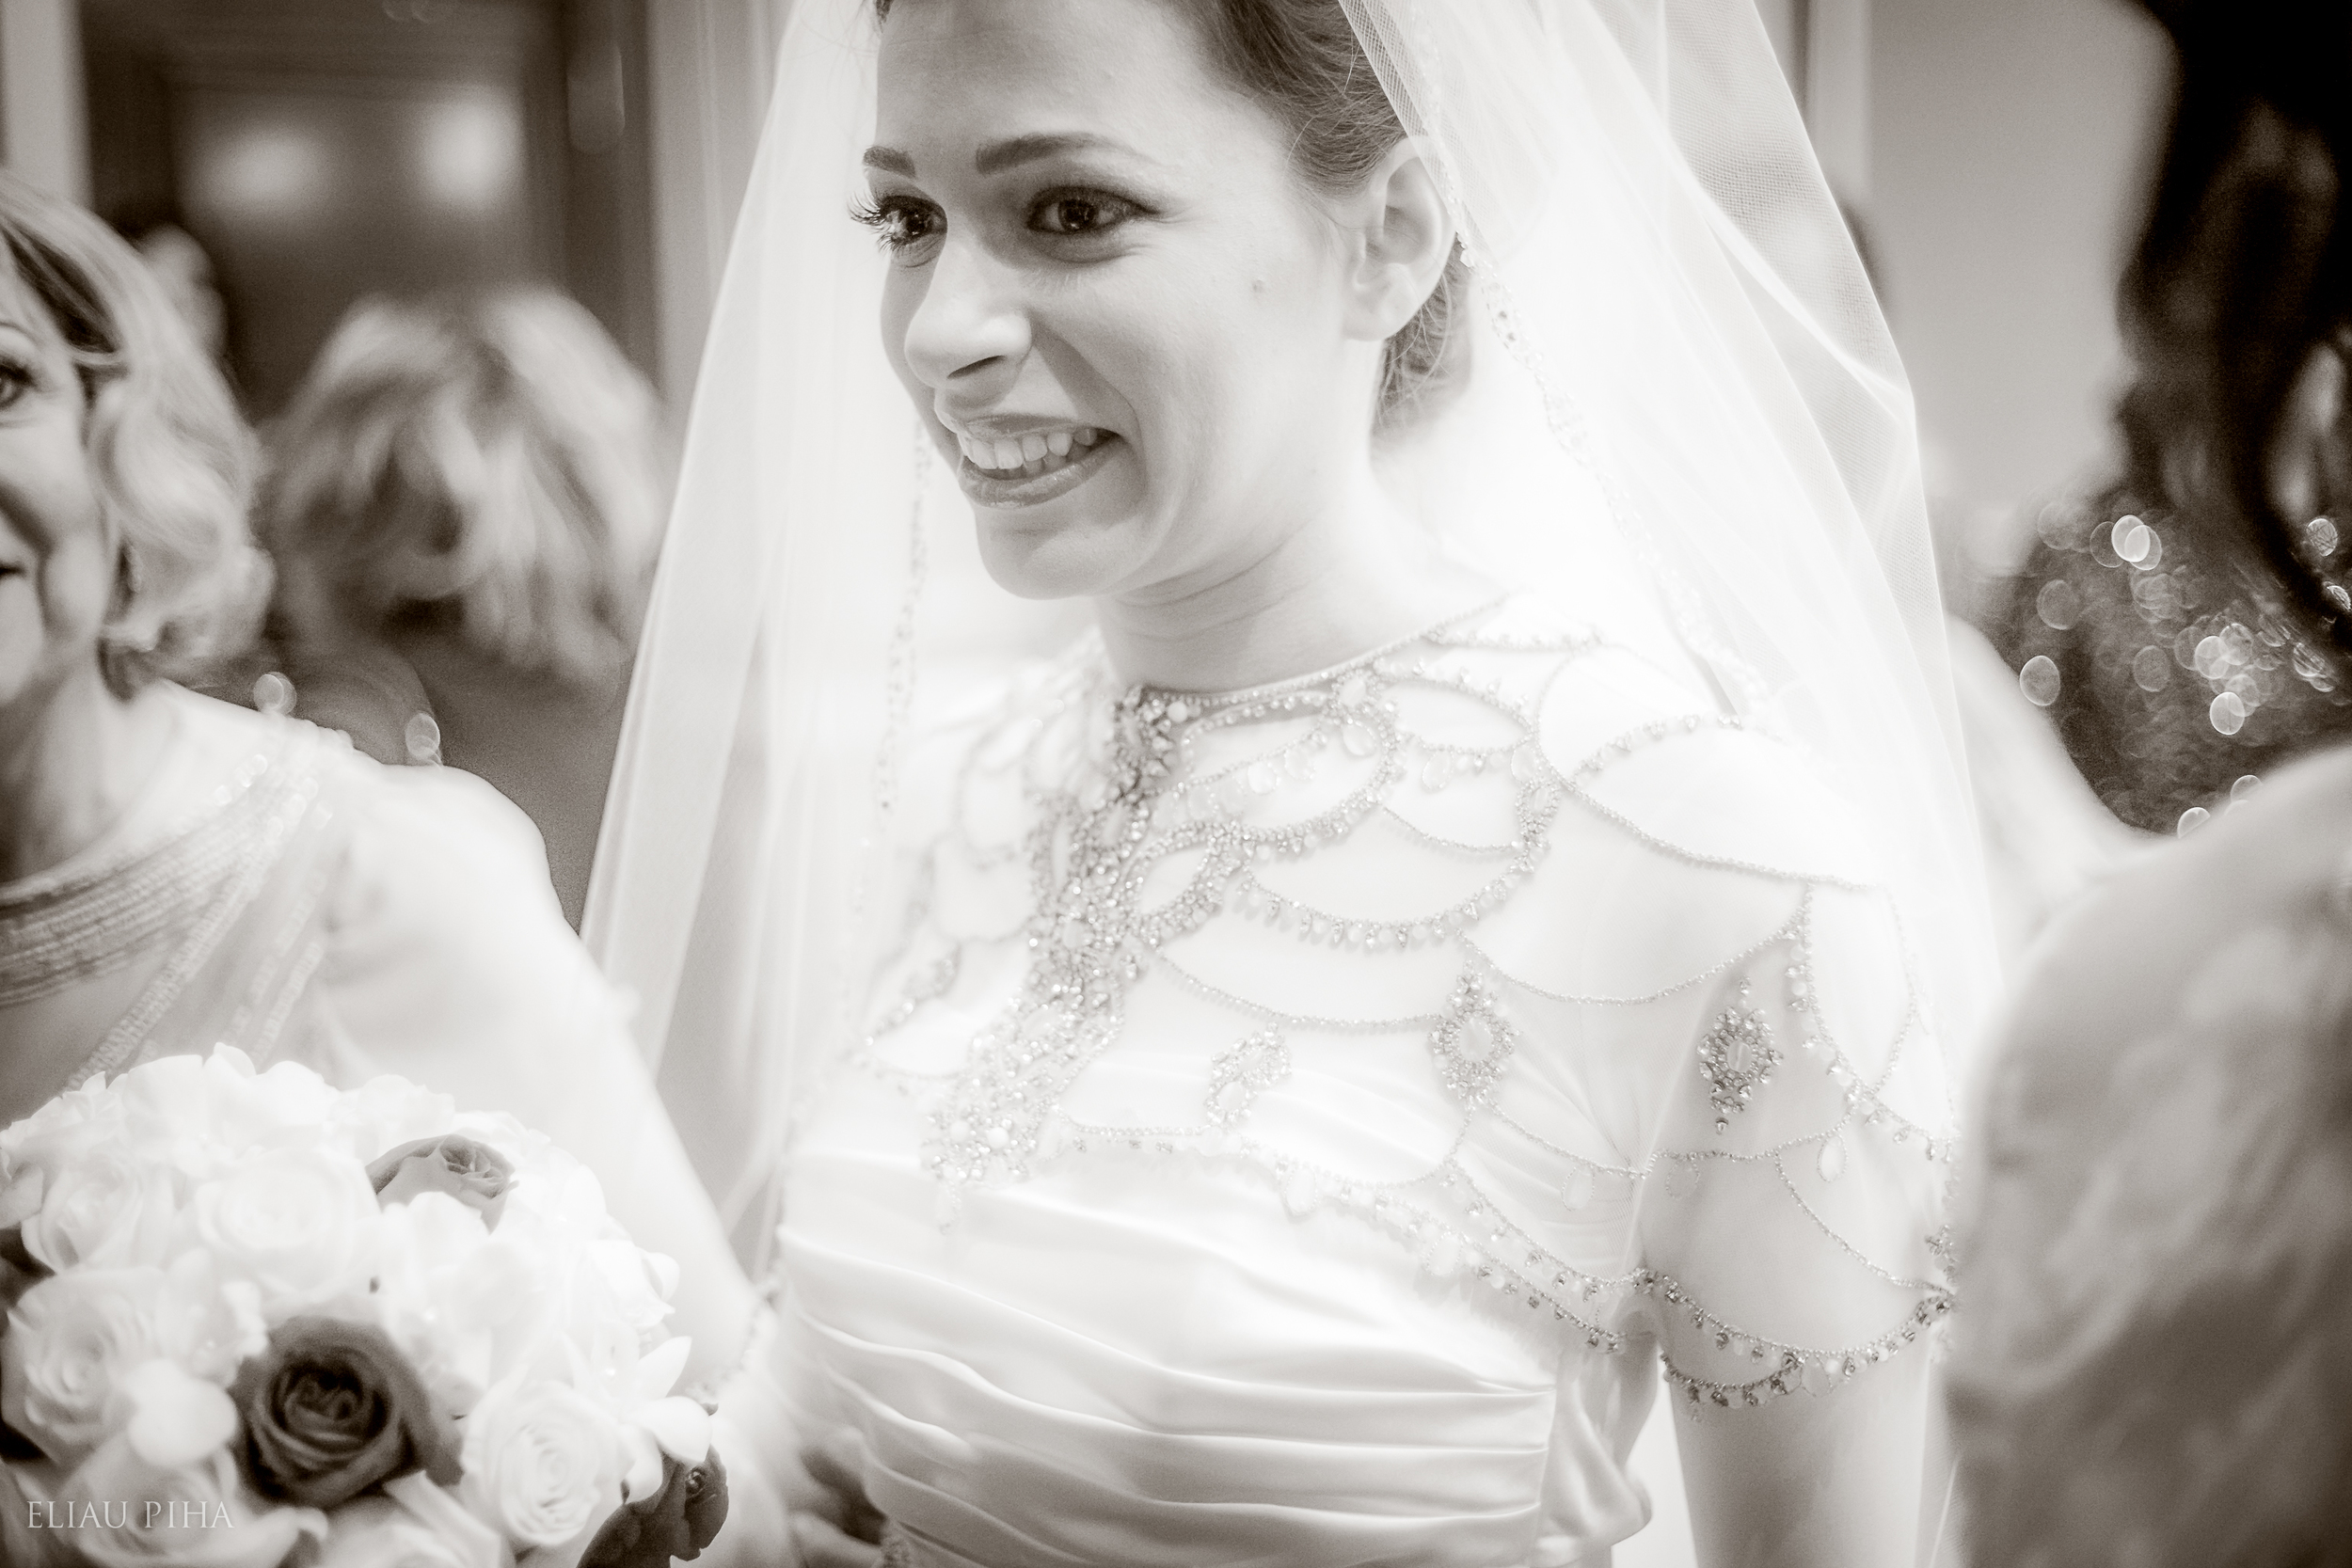 Wedding Sara and Ayal | Eliau Piha studio photography, new york, events, people-21.jpg